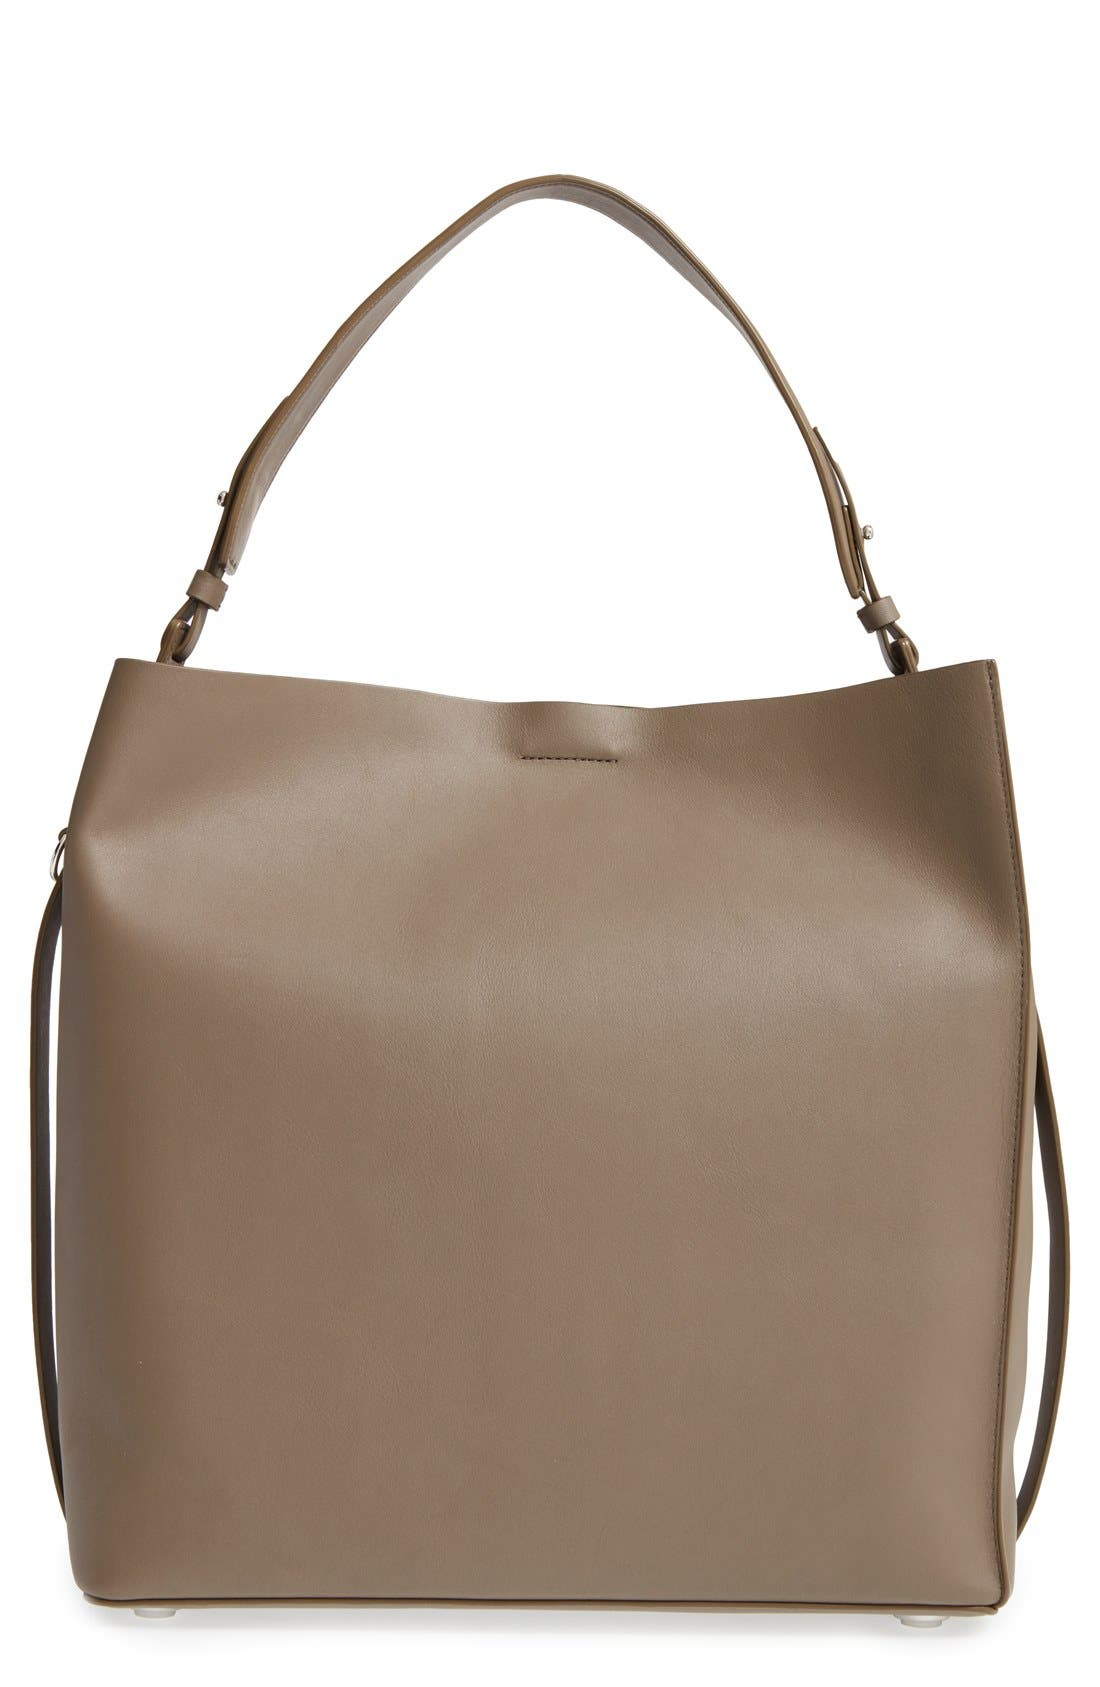 ALLSAINTS 'Paradise North/South' Calfskin Leather Tote